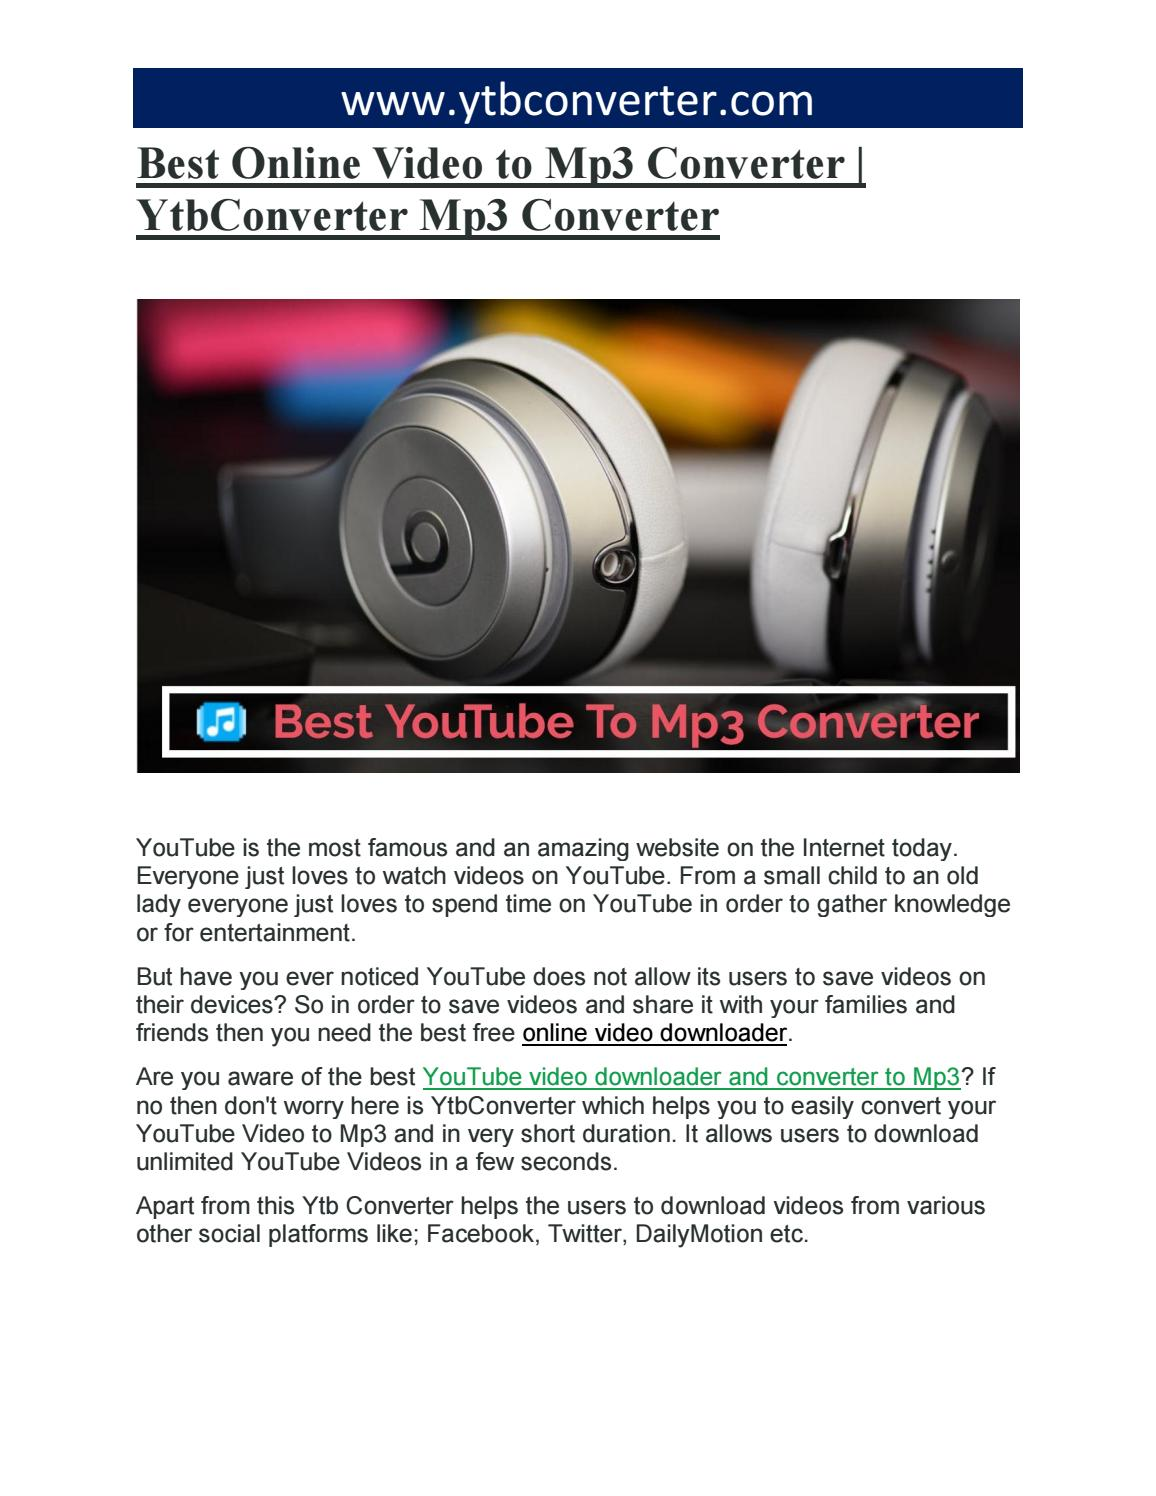 free download online youtube videos to mp3 converter